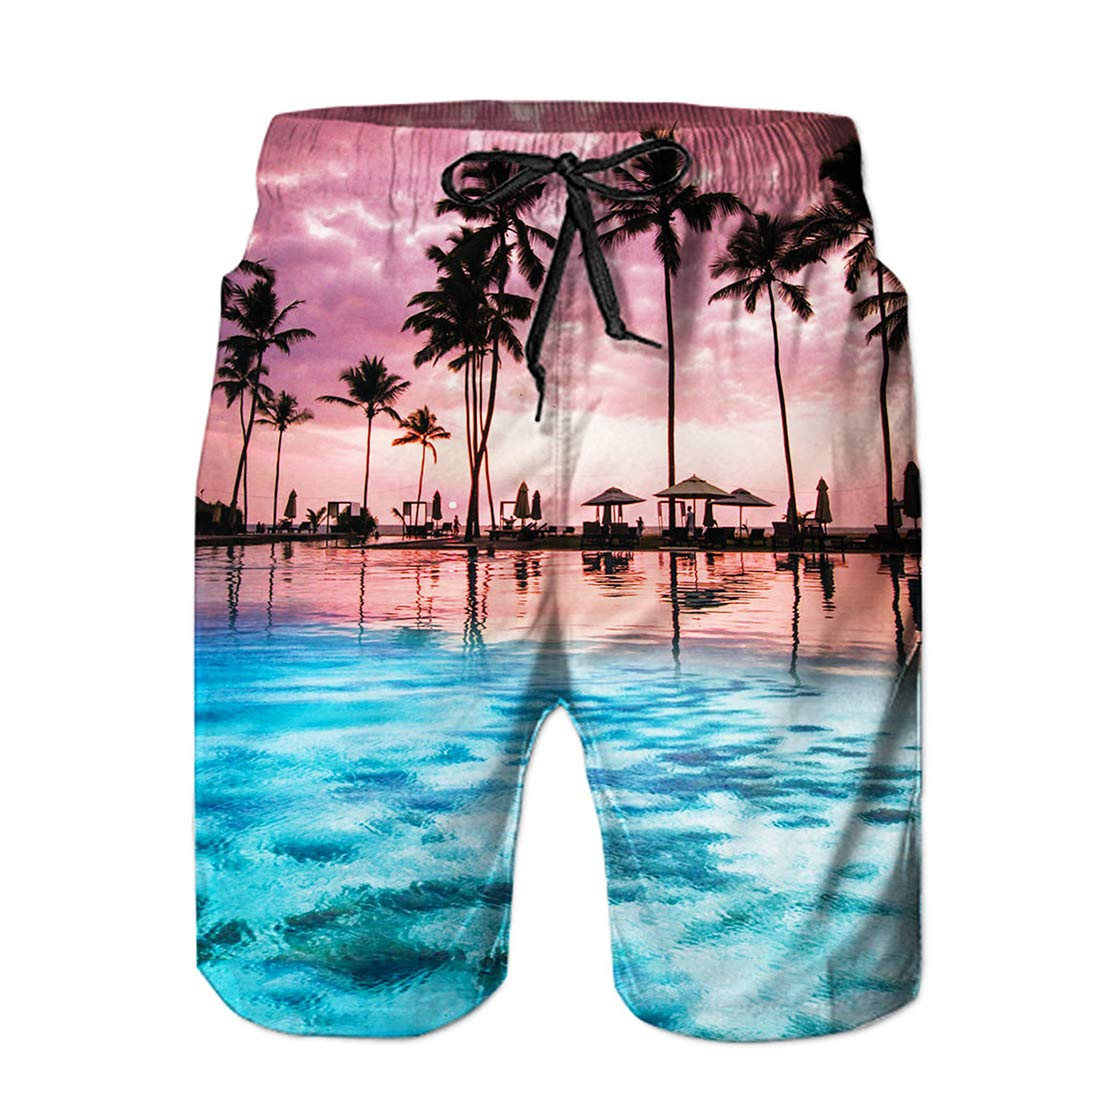 563e62eda6 Galleon - Alistyle Mens Swim Trunks Funny 3D Print Summer Cool Quick Dry  Board Shorts Bathing Suit With Mesh Lining